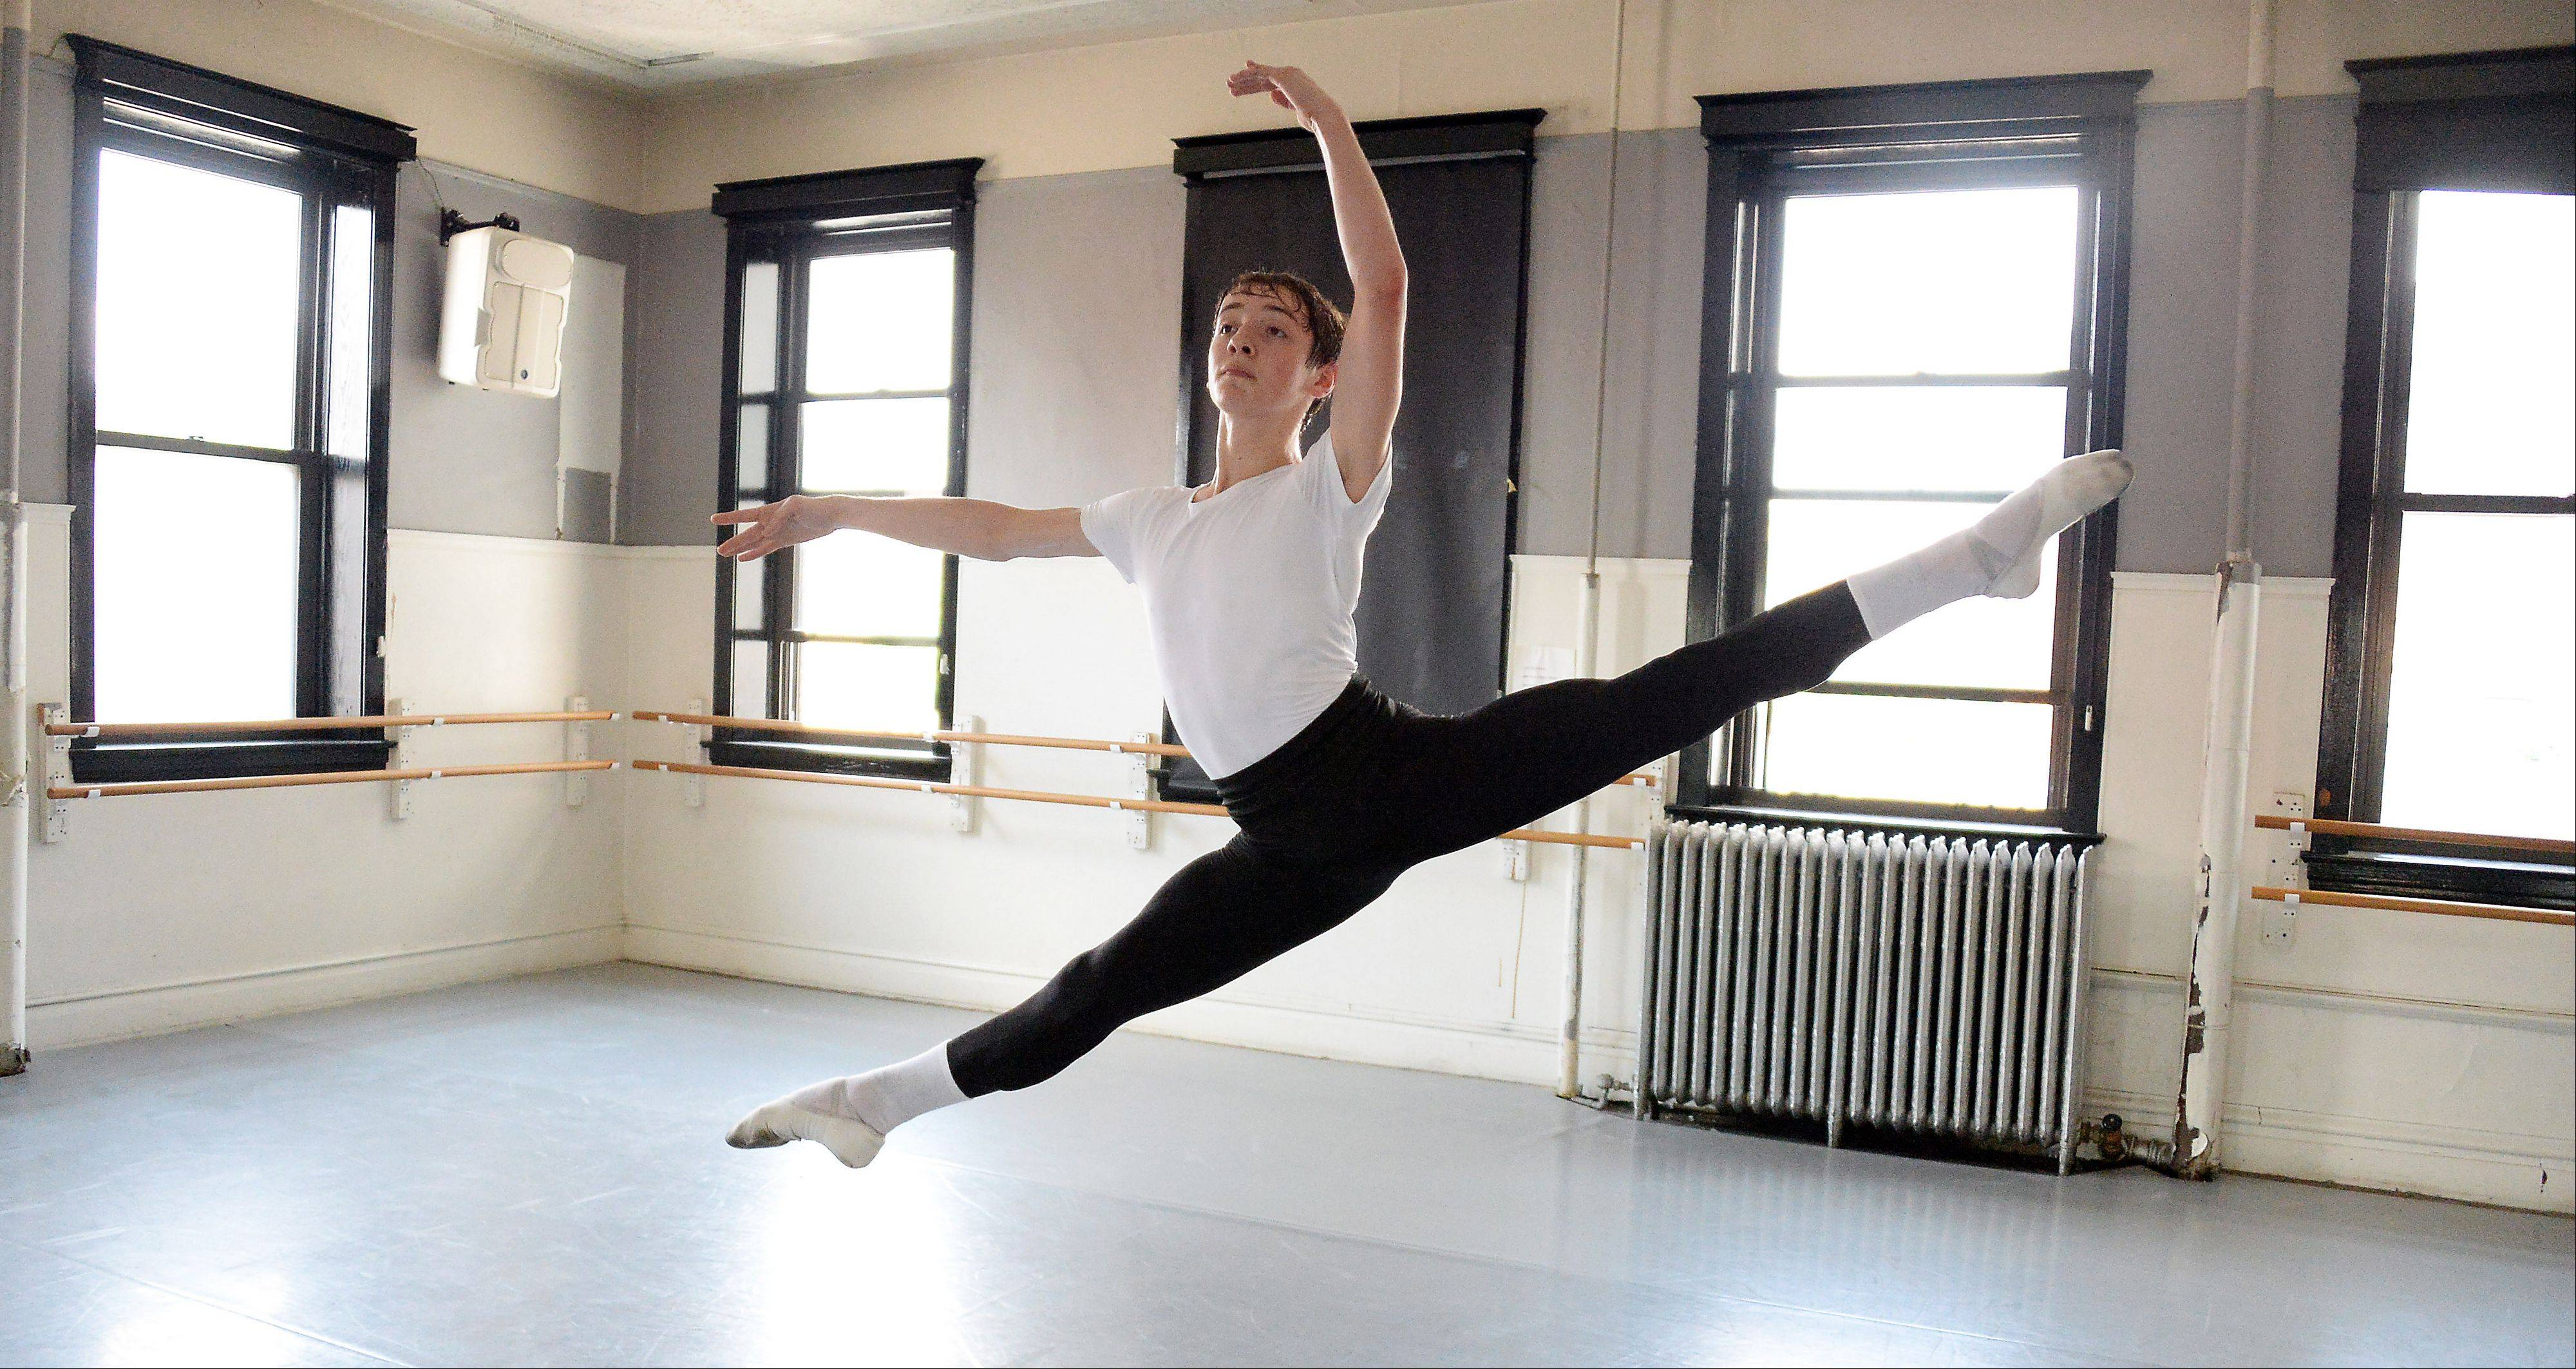 Joey Massarelli of Elk Grove Village began ballet only at 13, but just three years later he is in London studying with the Royal Ballet and is on track for a career with an elite dance company.